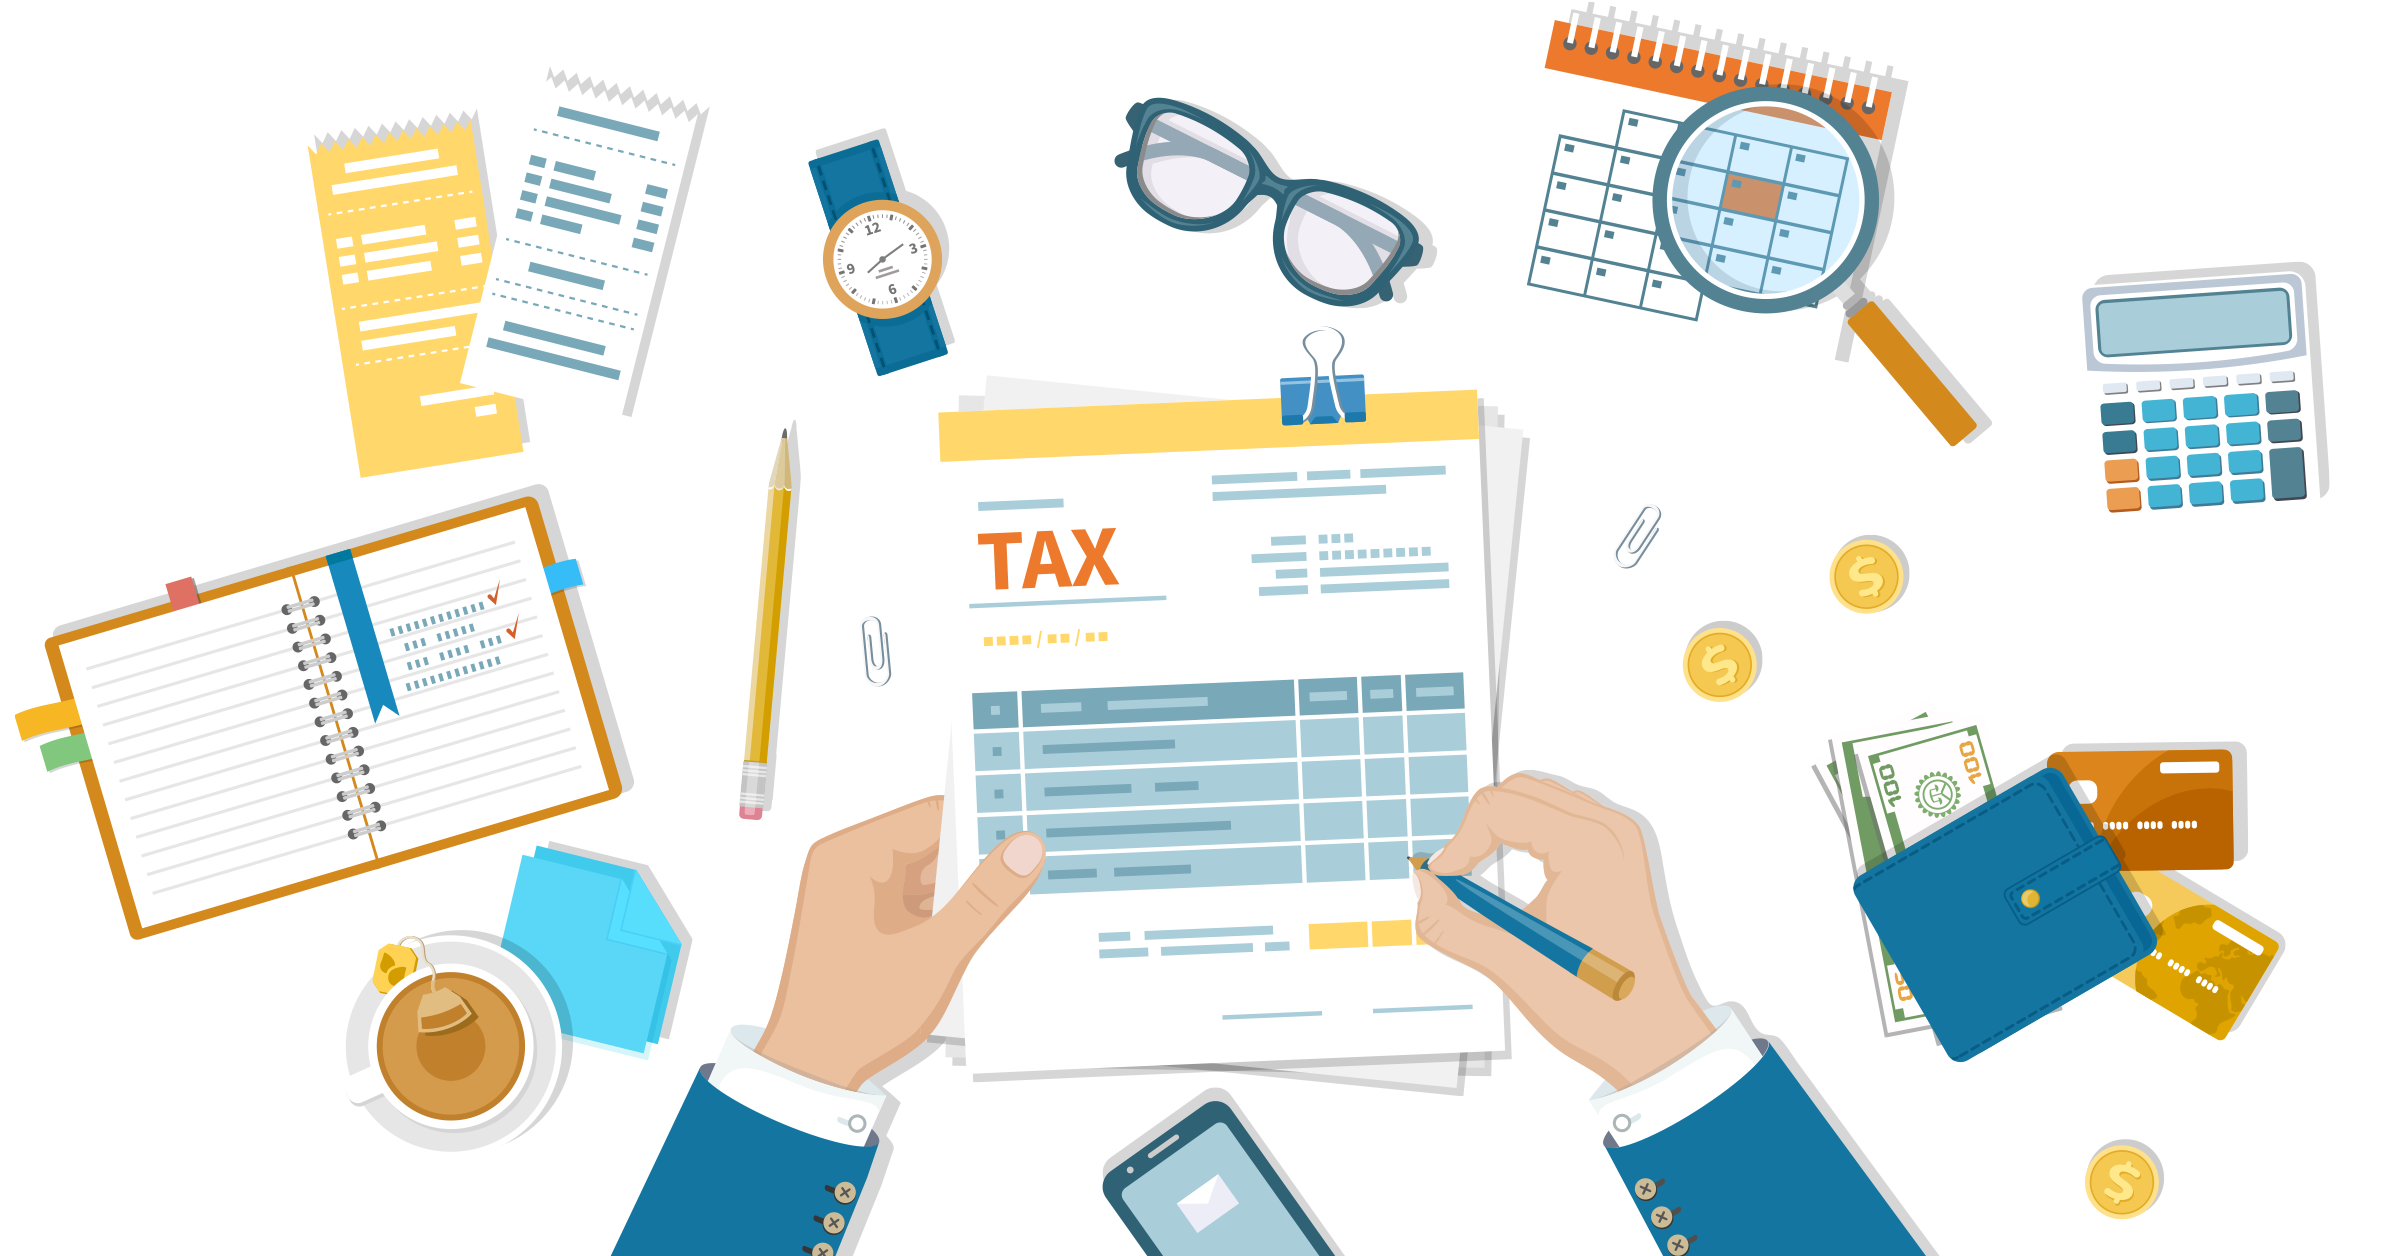 Accounting for taxes on business expenses